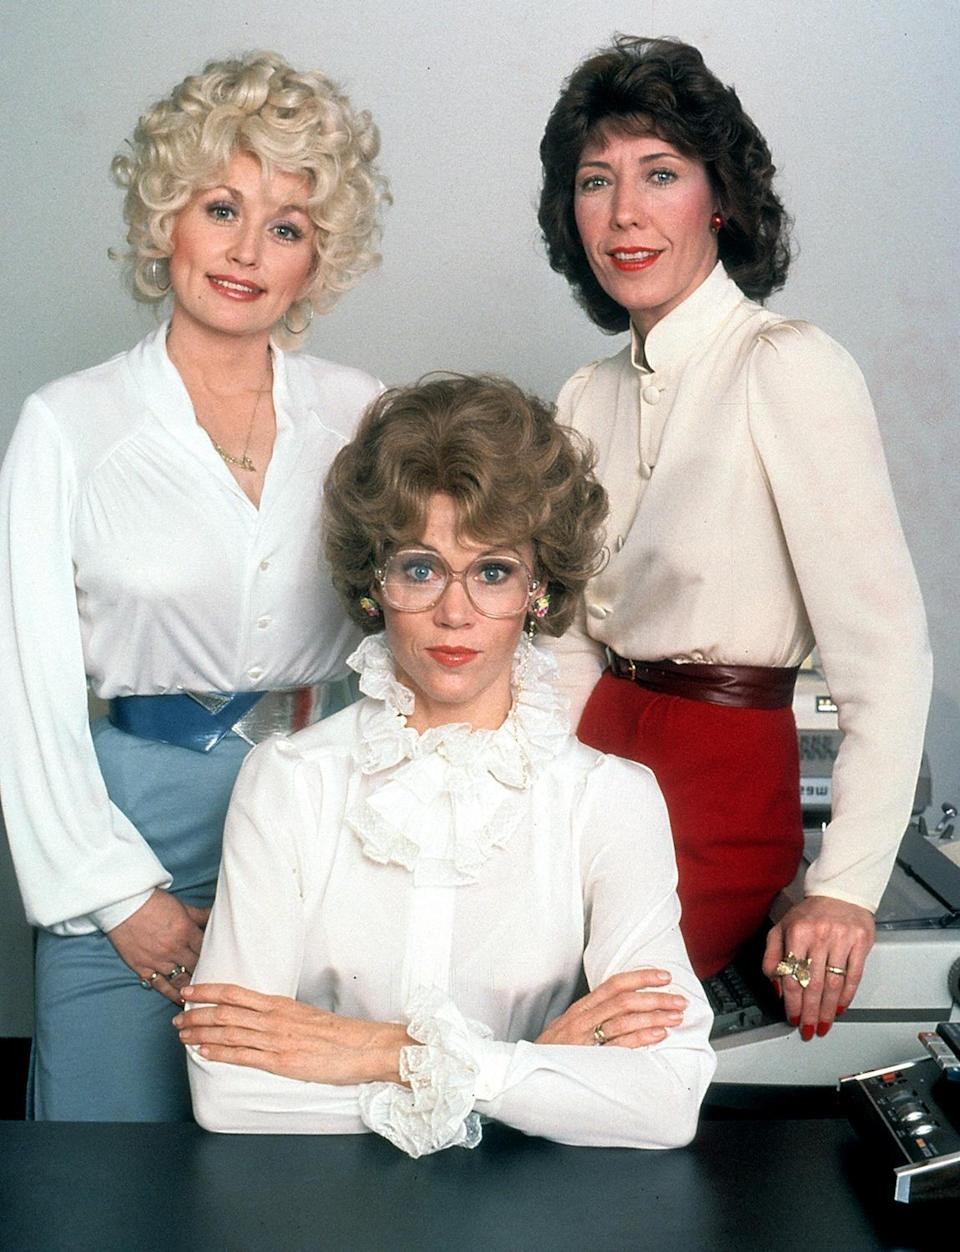 <p>The ultimate A-list threesome, Dolly Parton, Lily Tomlin and Fonda, turn the tables on their awful boss in the 1980 film <em>Nine to Five</em>.</p>